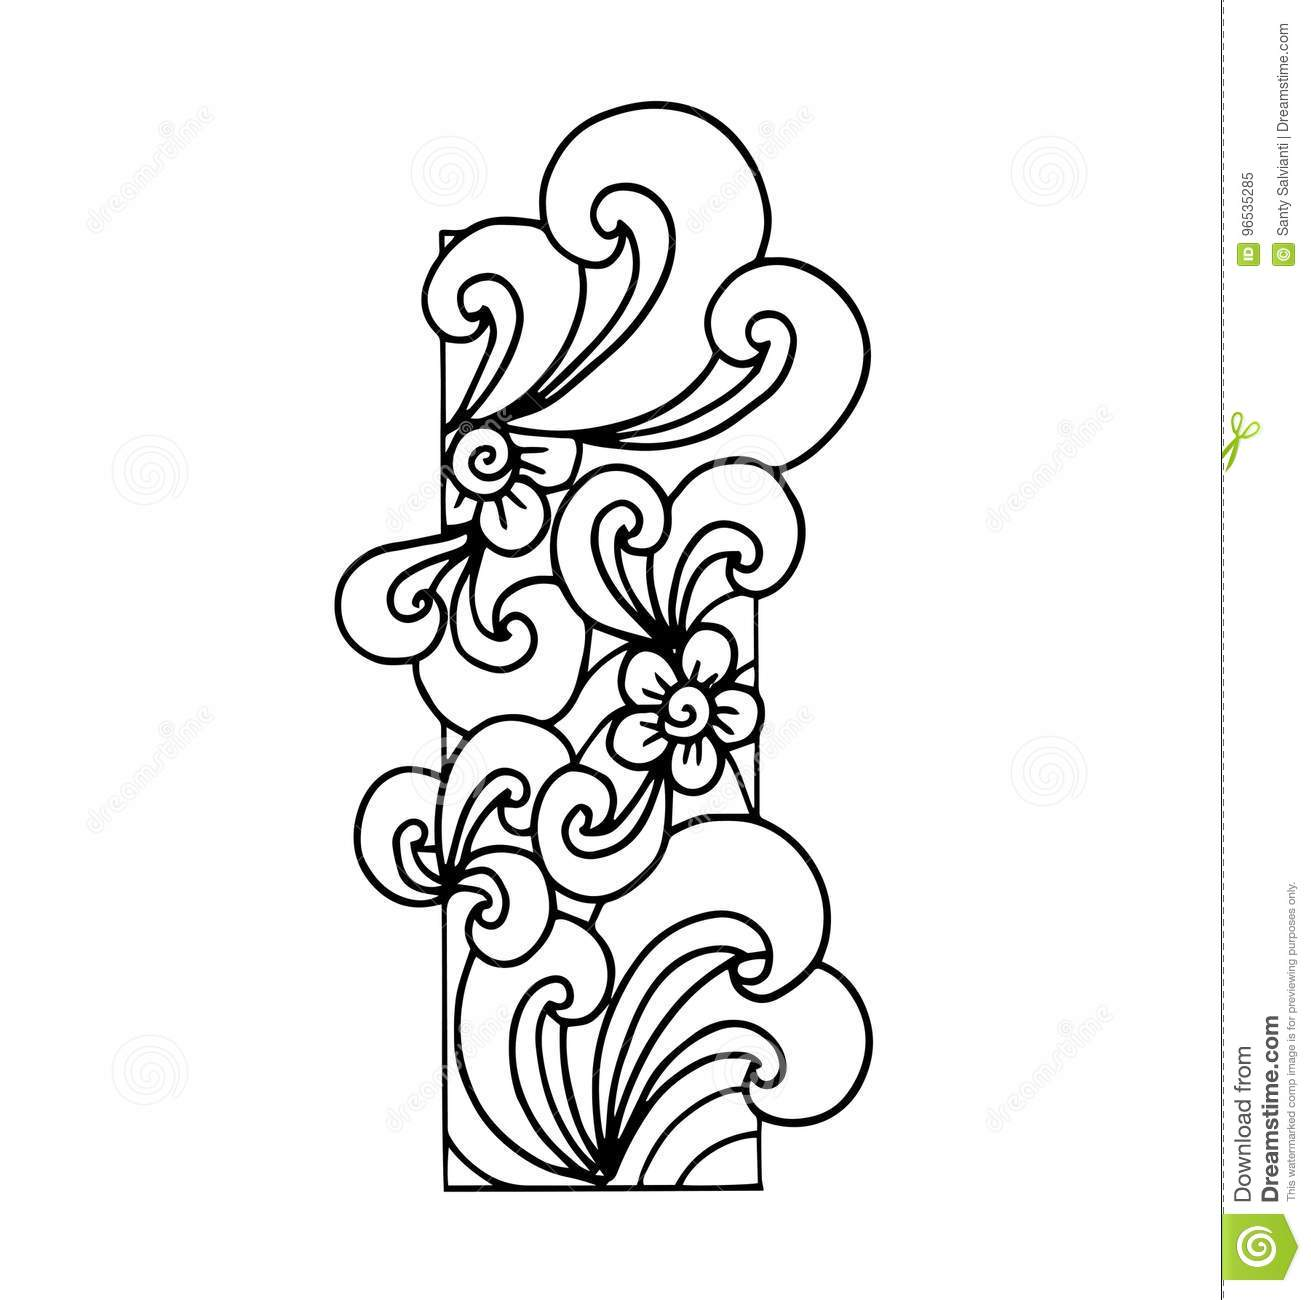 Download Zentangle Stylized Alphabet Letter I In Doodle Style Stock Illustration